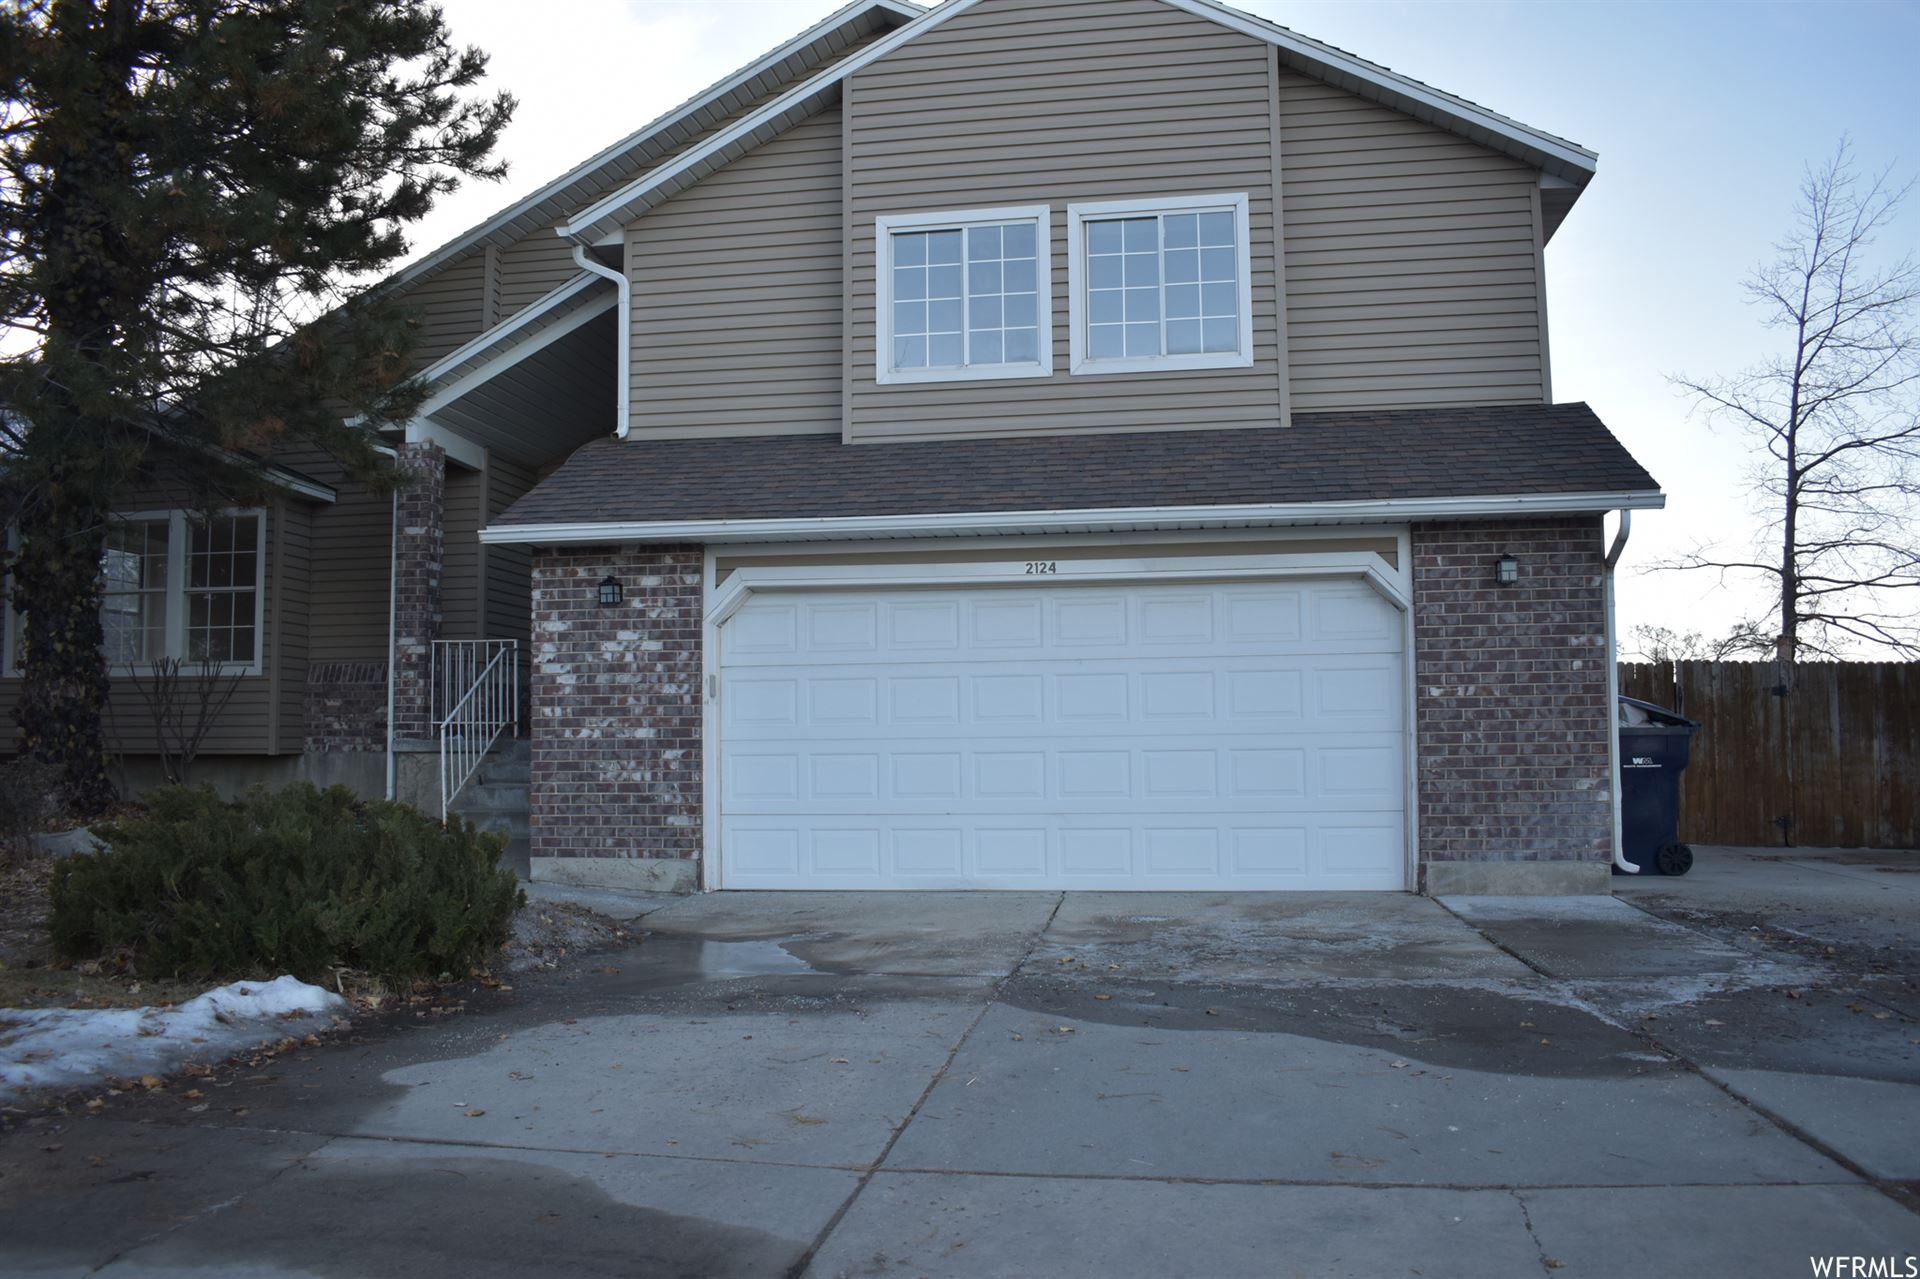 Photo of 2124 E SEGO LILY S DR, Sandy, UT 84092 (MLS # 1720179)